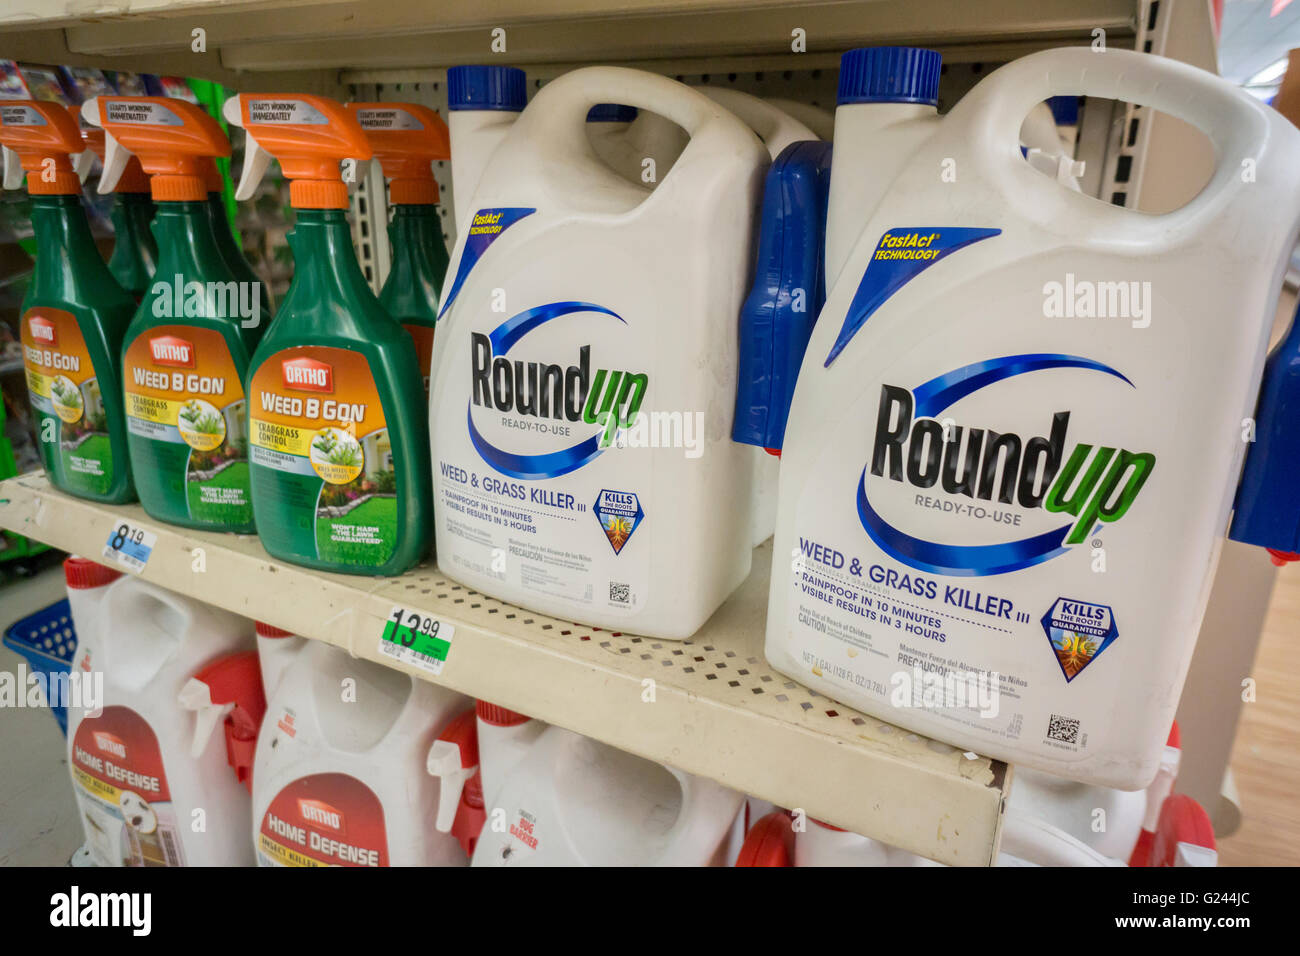 Containers Of Monsanto Roundup Weed Killer On A Garden Supply Store Shelf  In New York On Monday, May 23, 2016. Bayer AG, The German Pharmaceutical  And ...